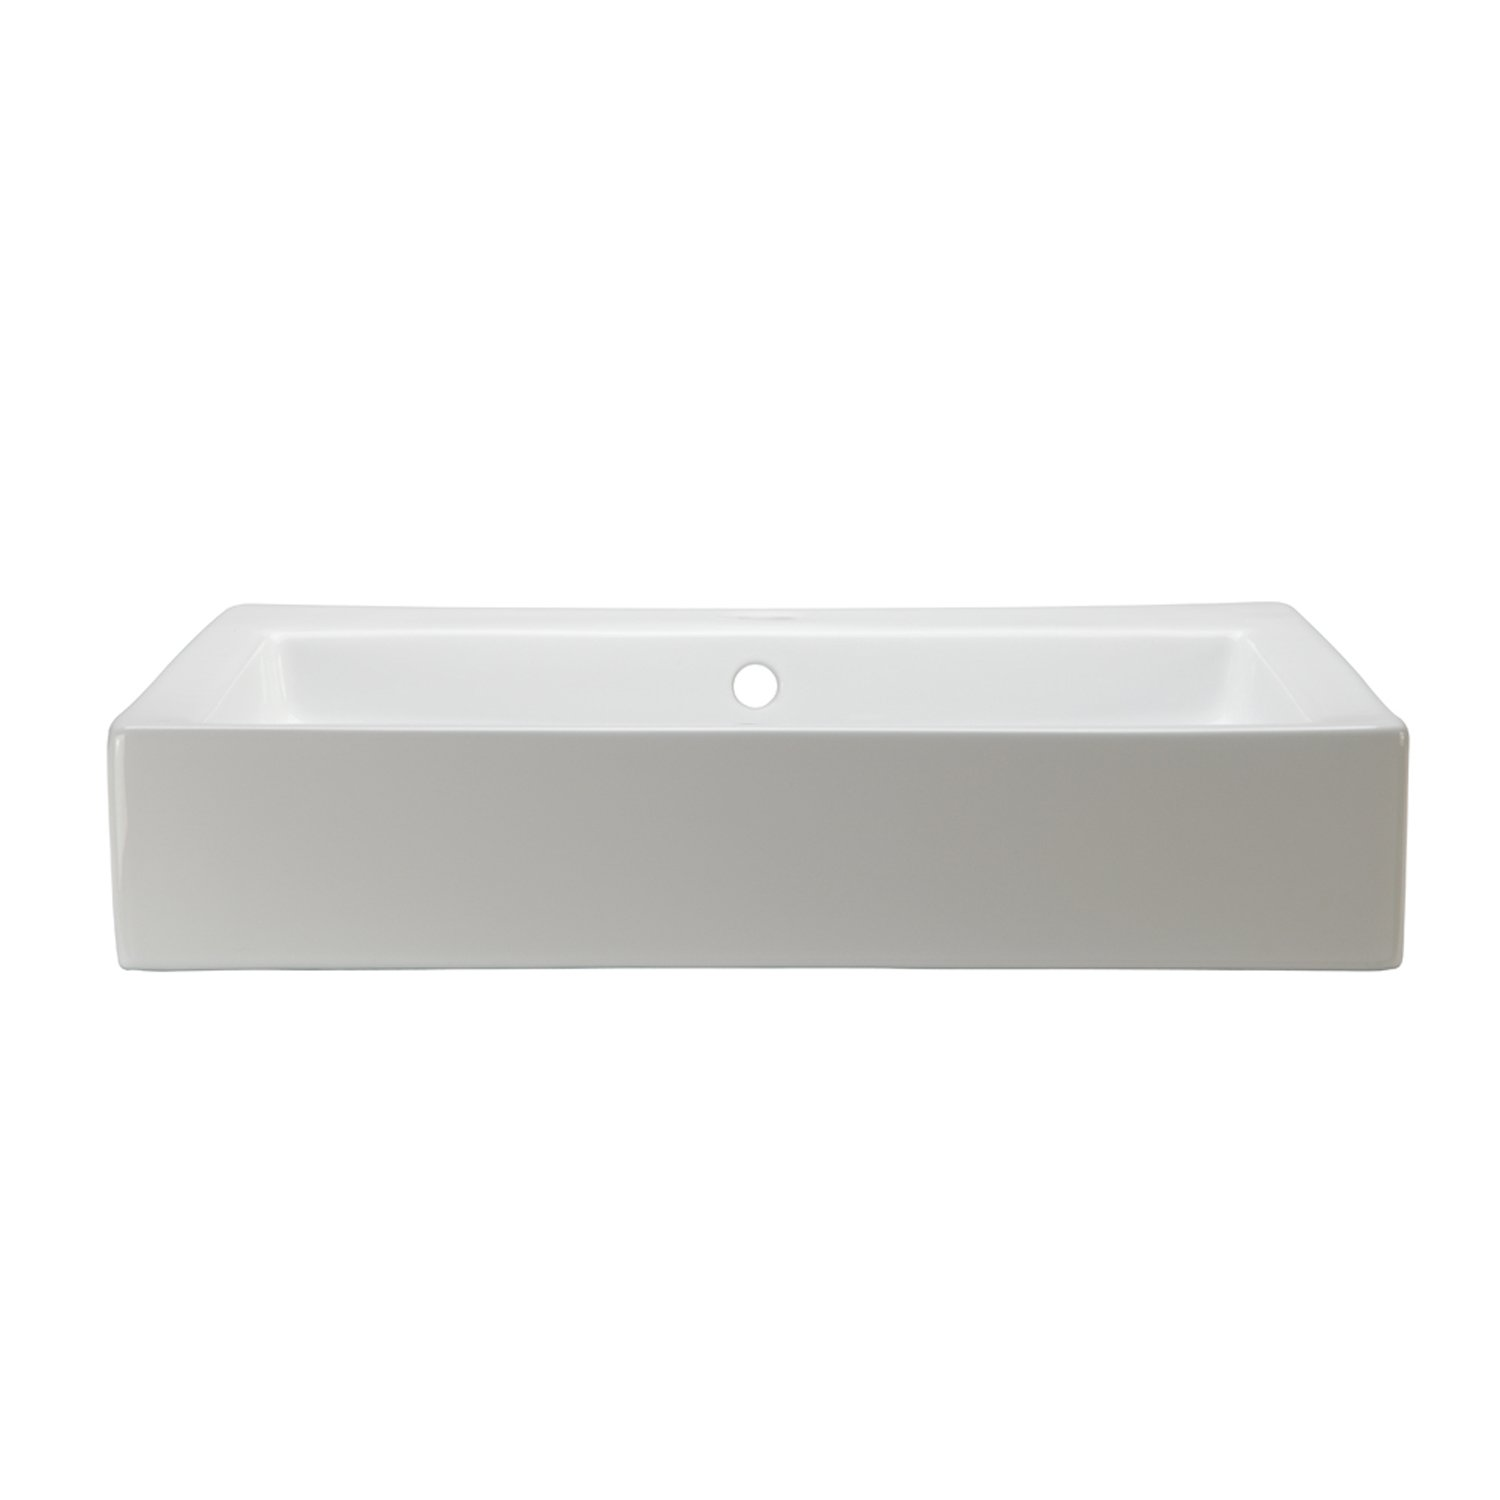 DECOLAV 1444 CWH Classically Redefined Rectangular Counter